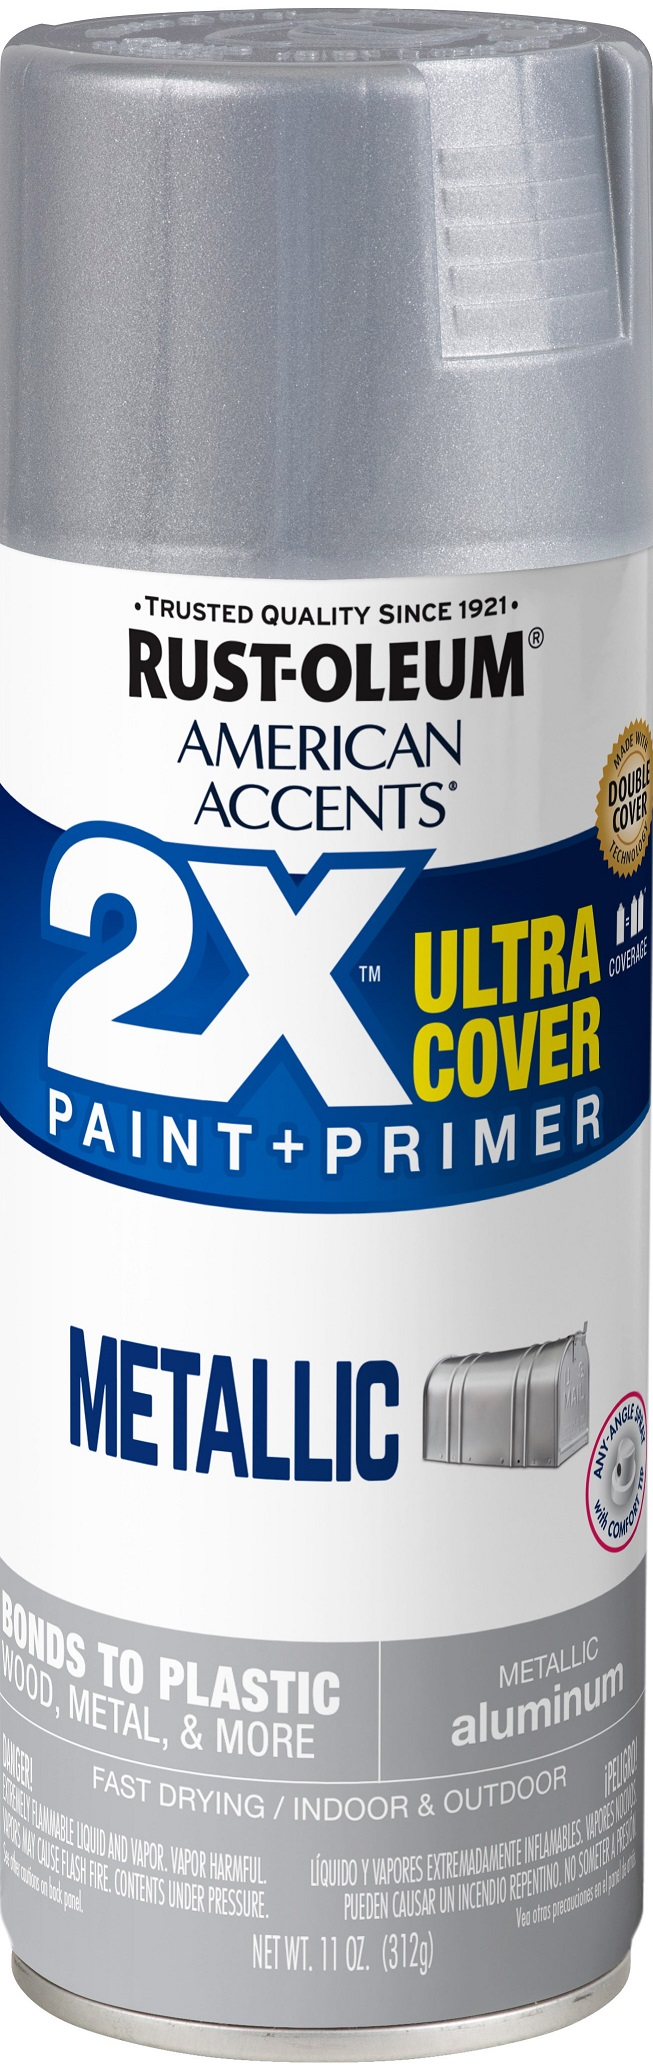 (3 Pack) Rust-Oleum American Accents Ultra Cover 2X Metallic Aluminum Spray Paint and Primer in 1, 11 oz